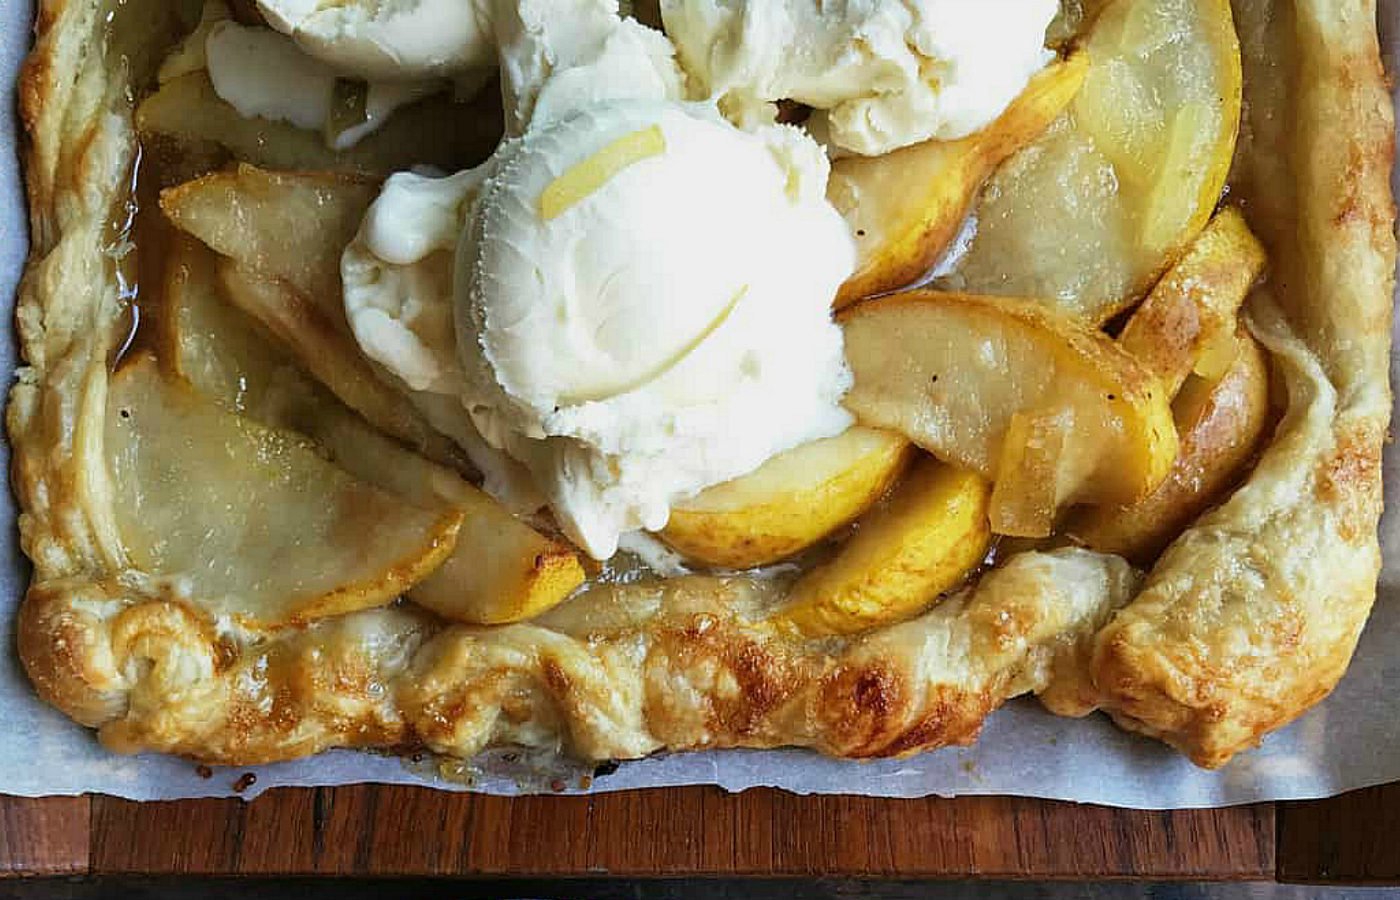 Pear Puff Pastry Dessert Recipe - Reluctant Entertainer